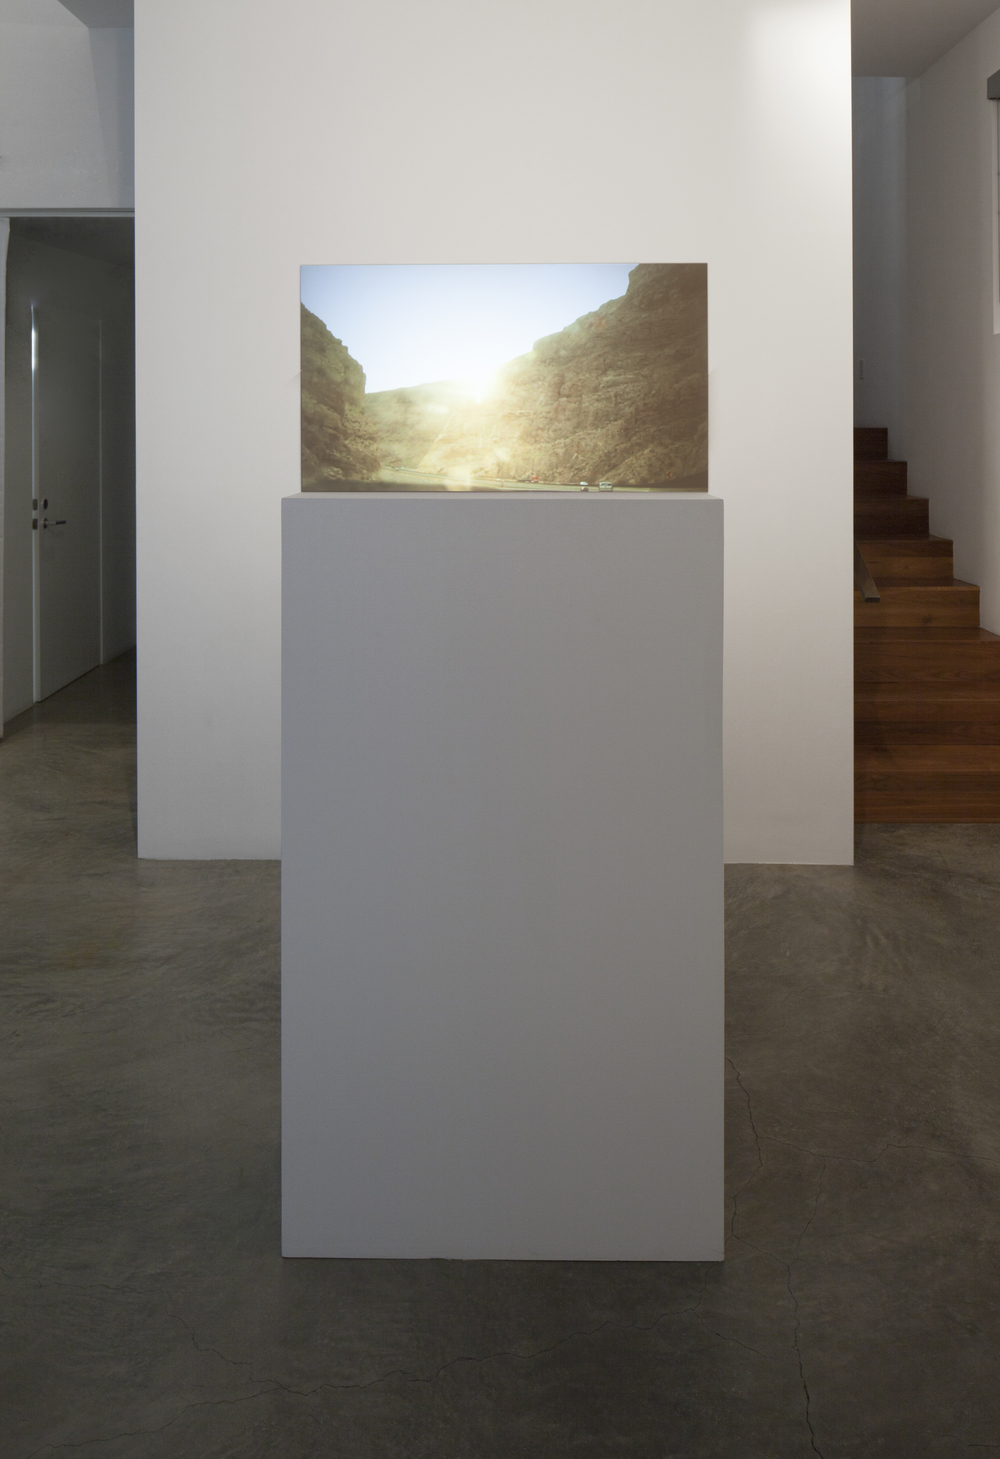 Installation View  (Shulamit Gallery, 2014)   Prodigal Sun,   2012  Single Channel HD Video Projection onto Glass in Pedestal, No Sound, TRT 2:20, Looping 69 x 30 x 12 Inches (Pedestal and Glass)